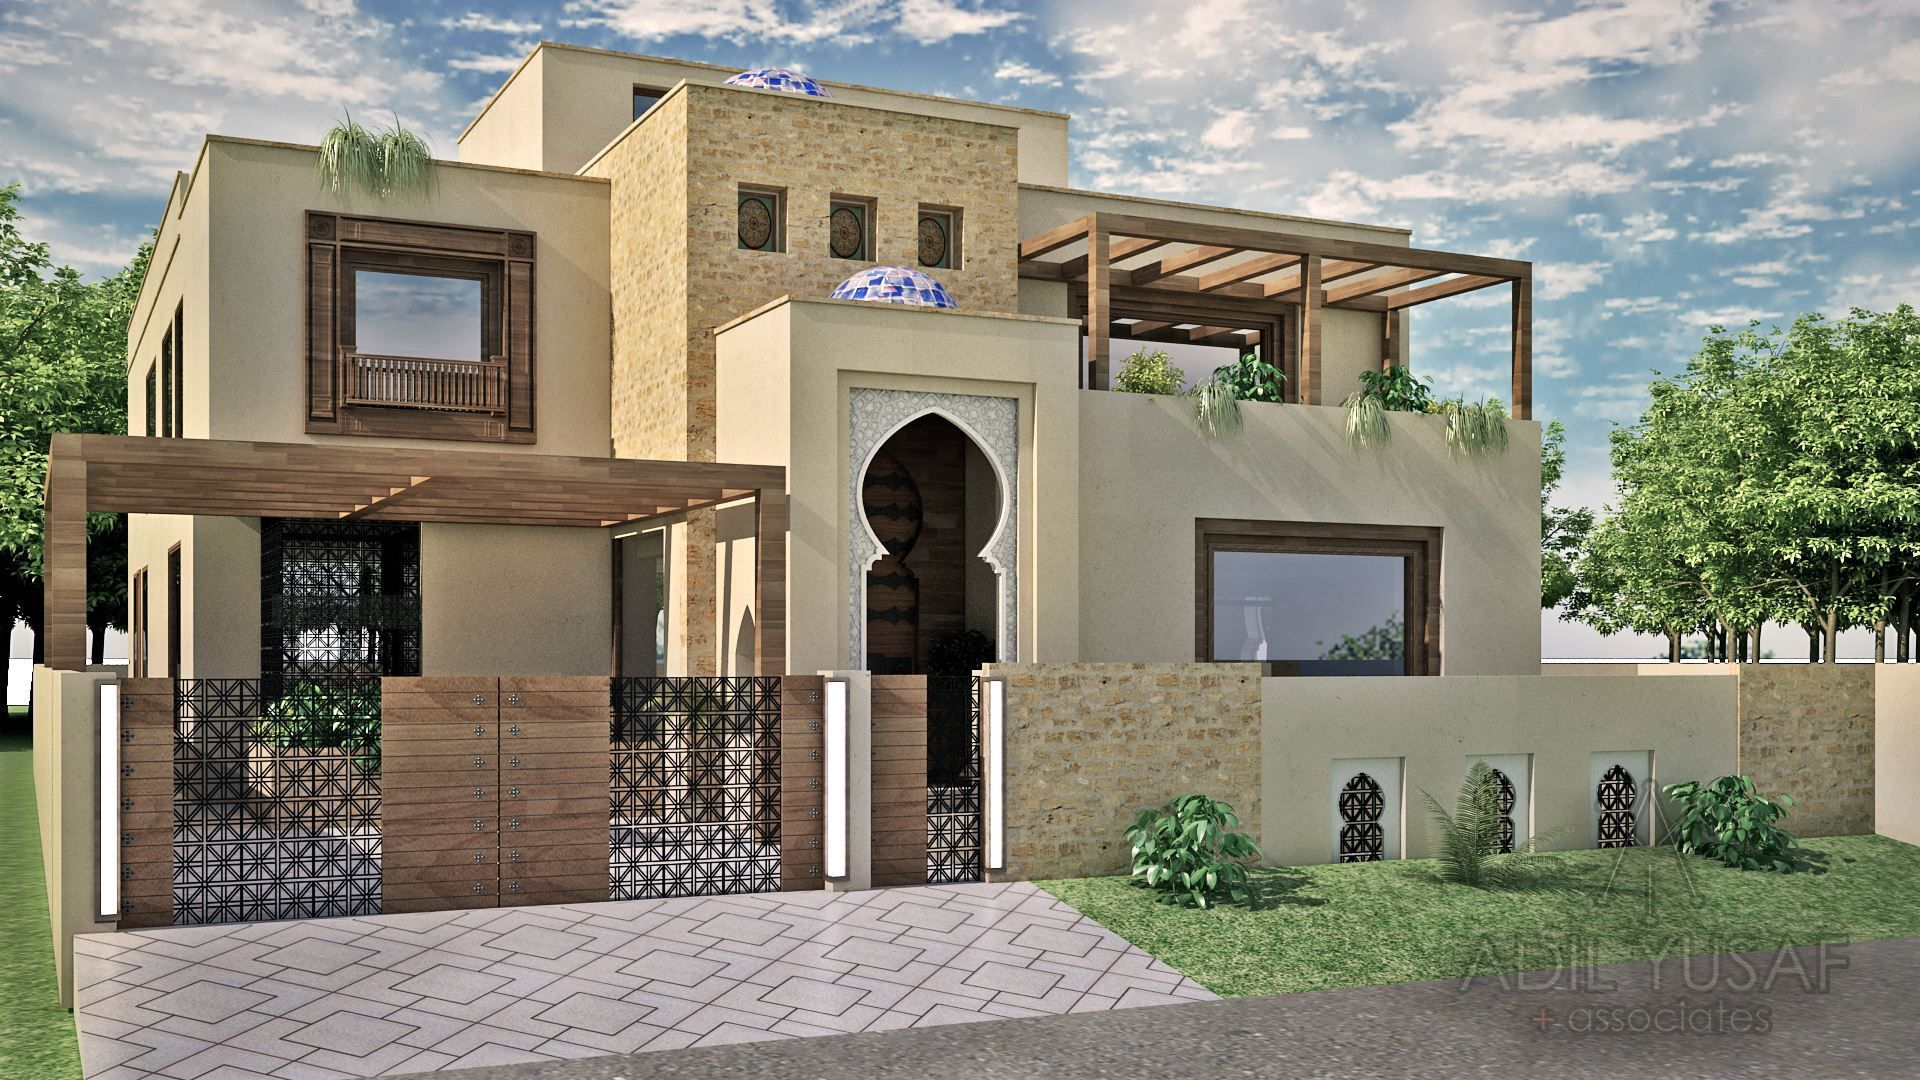 Moroccan Style Residence By Adil Yusaf Associates 1 Kanal House House Design Facade House Morrocan House